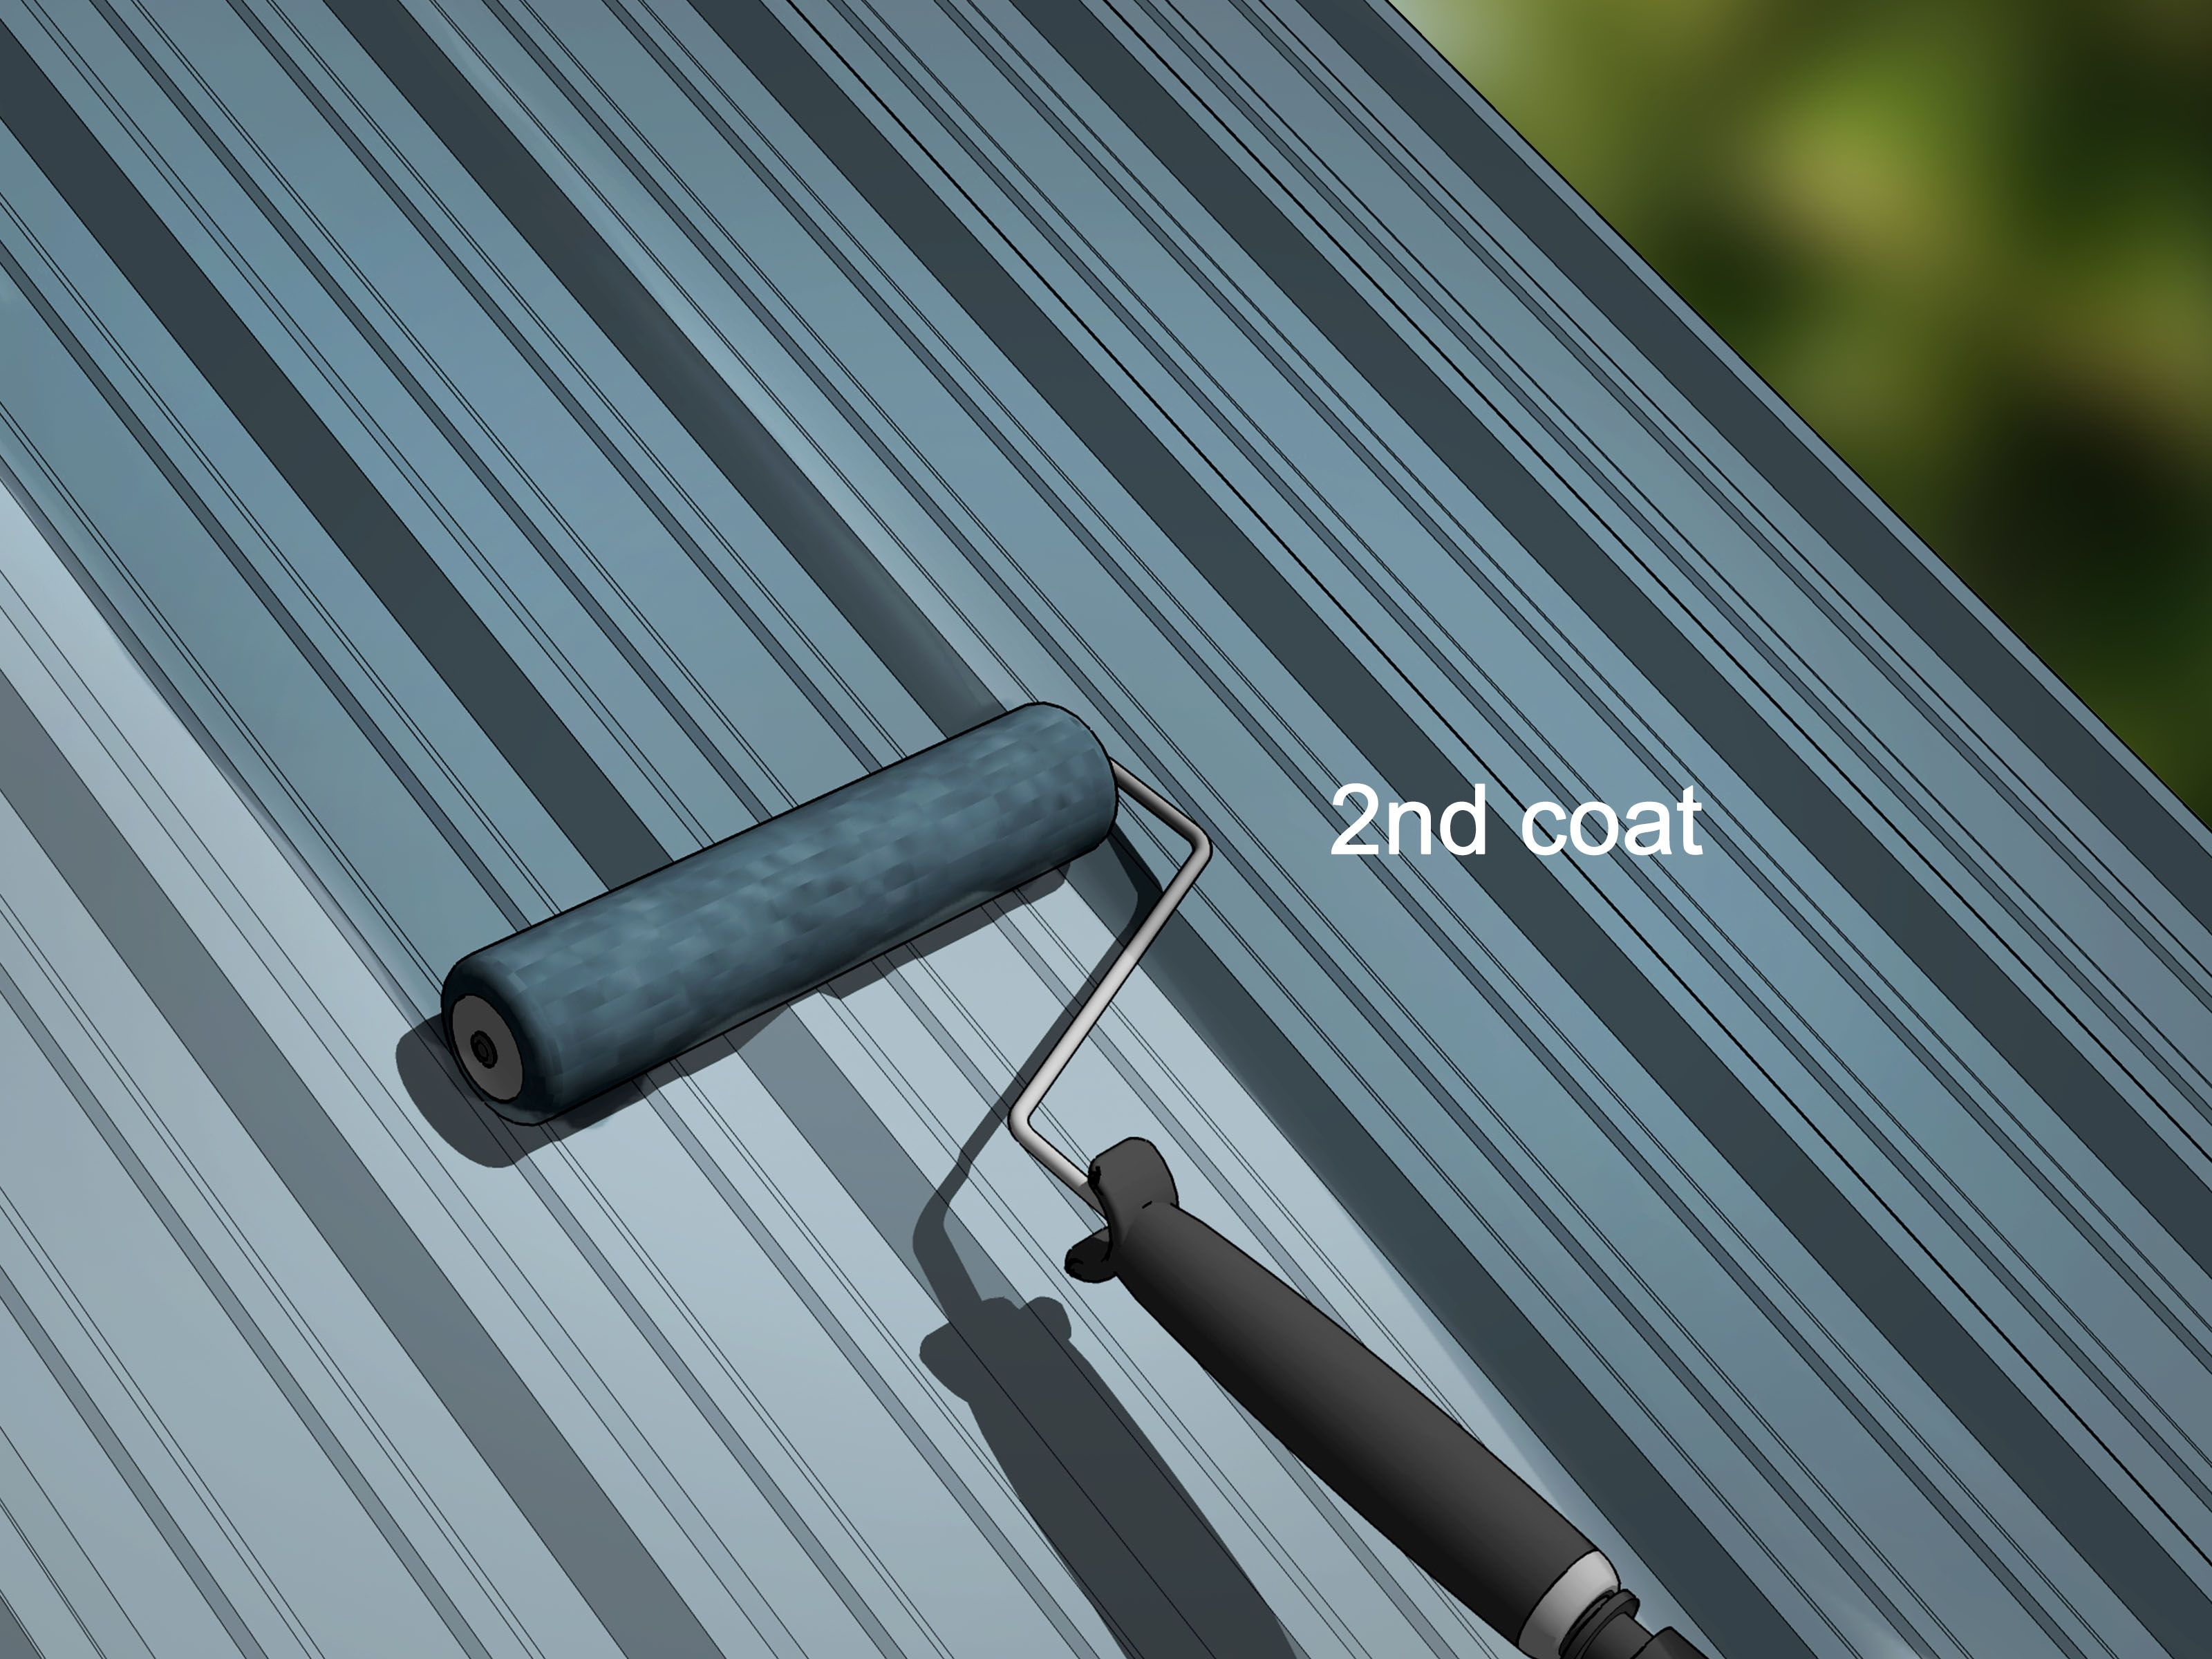 Best Paint For Metal Roof In 2020 Metal Roof Paint Metal Roof Coating Roof Paint